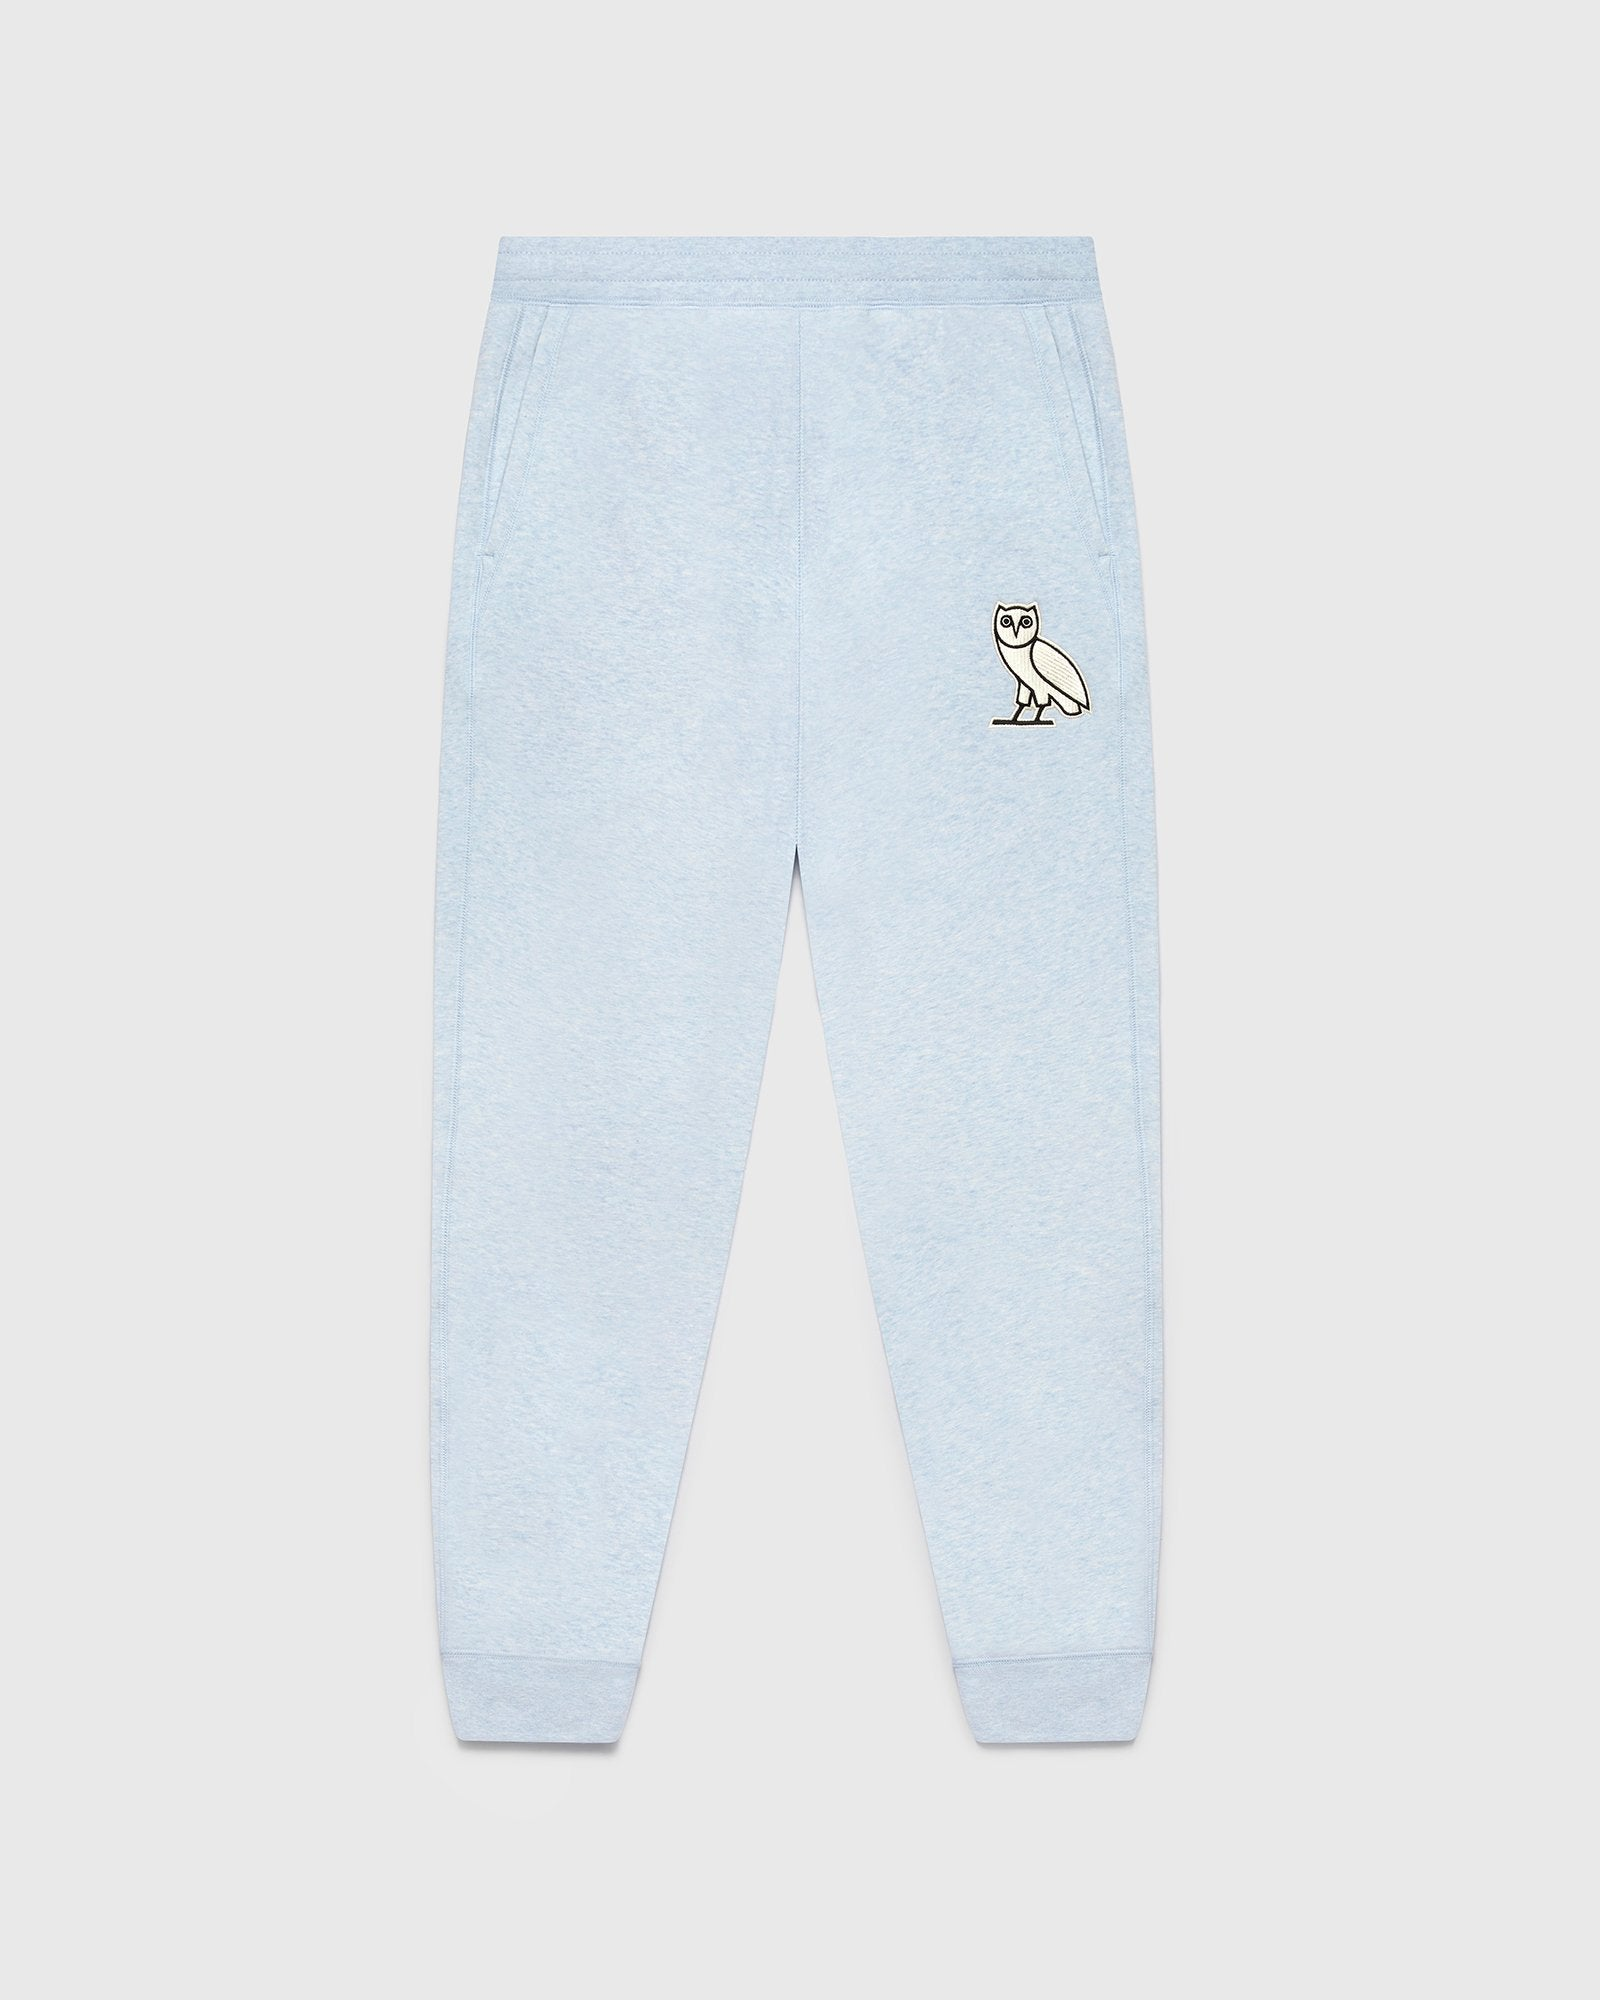 OWL PLUSH SWEATPANT - SKY BLUE IMAGE #1